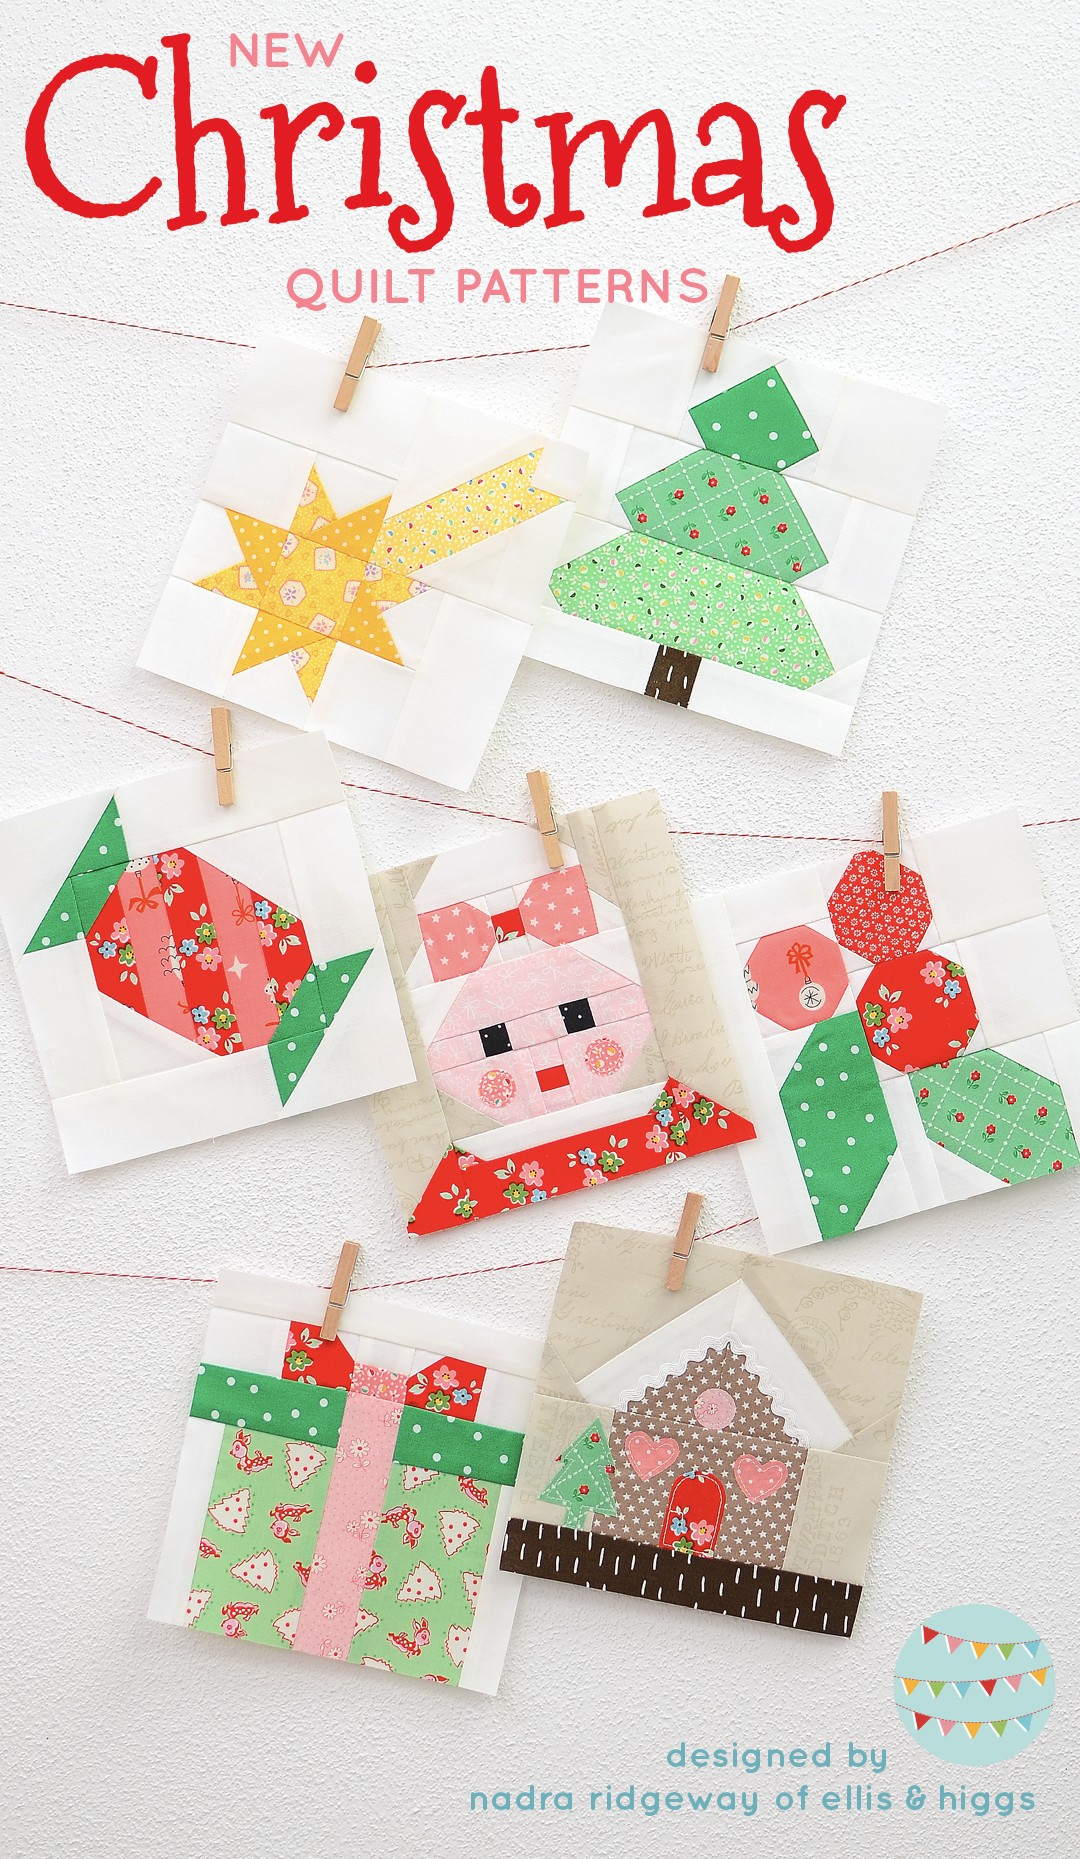 Christmas quilt patterns - Christmas quilt blocks hanging on the wall